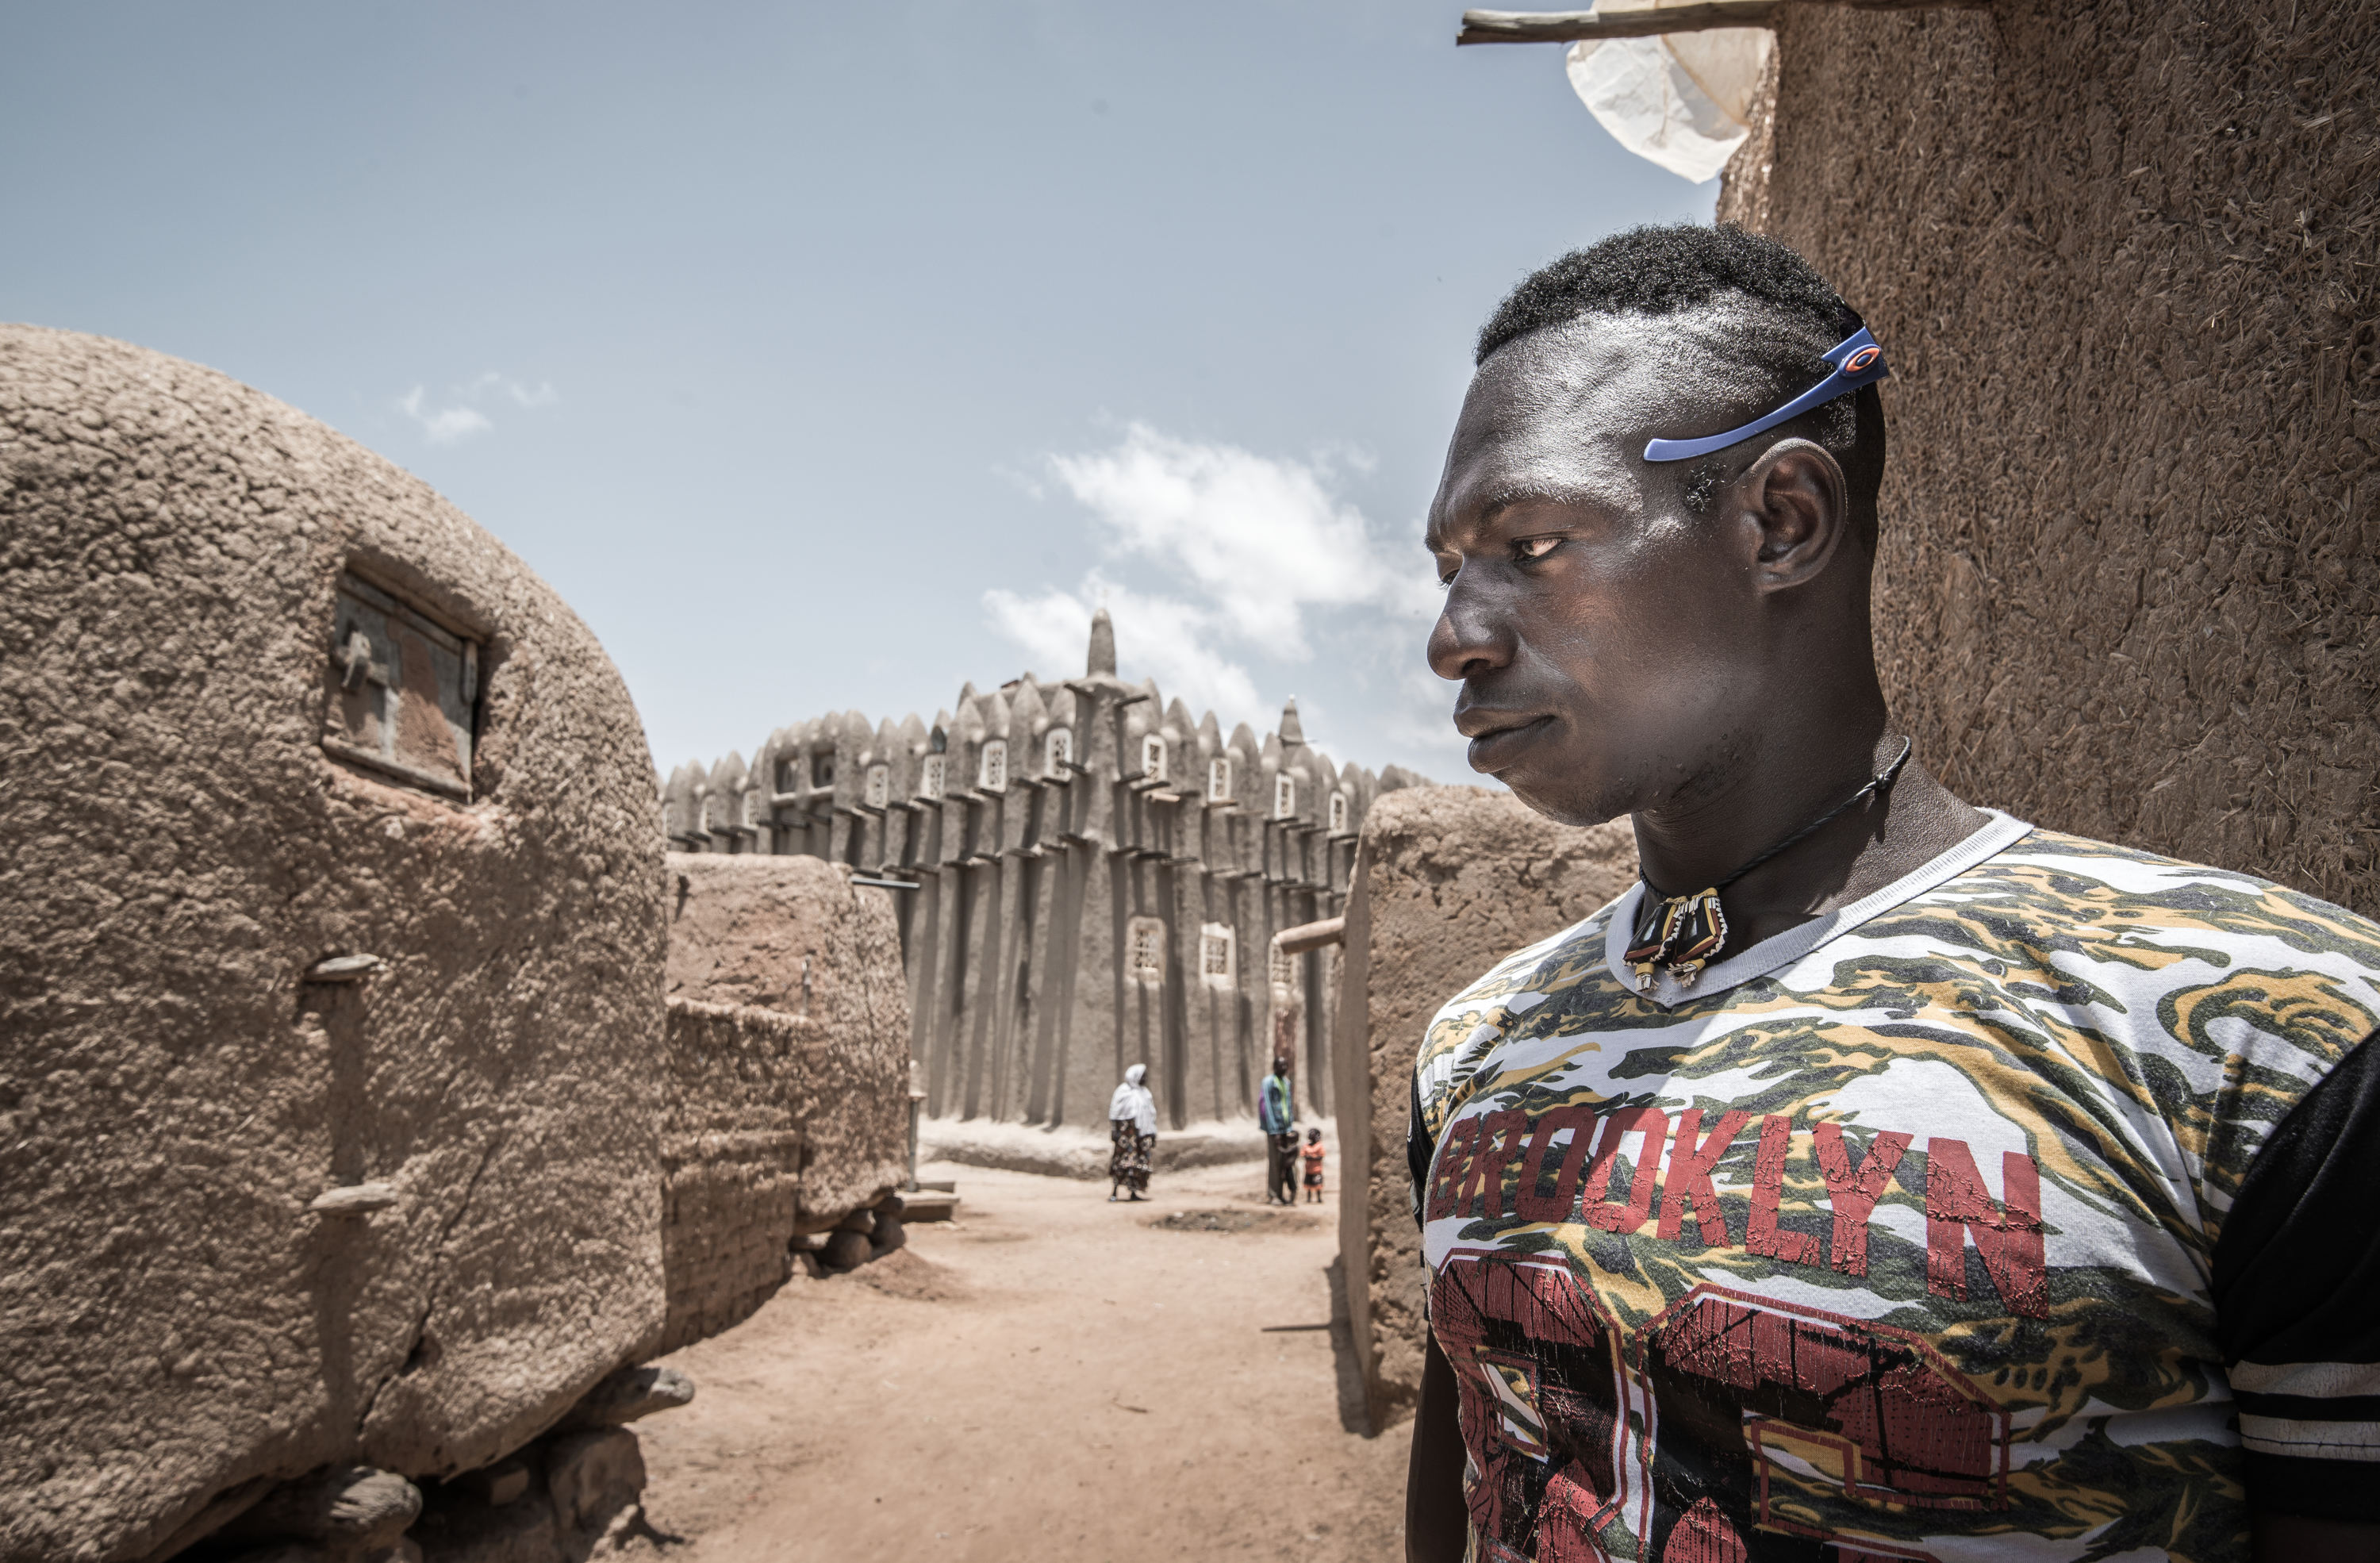 Humans&Climate Change Stories | Mali | Samuel Turpin